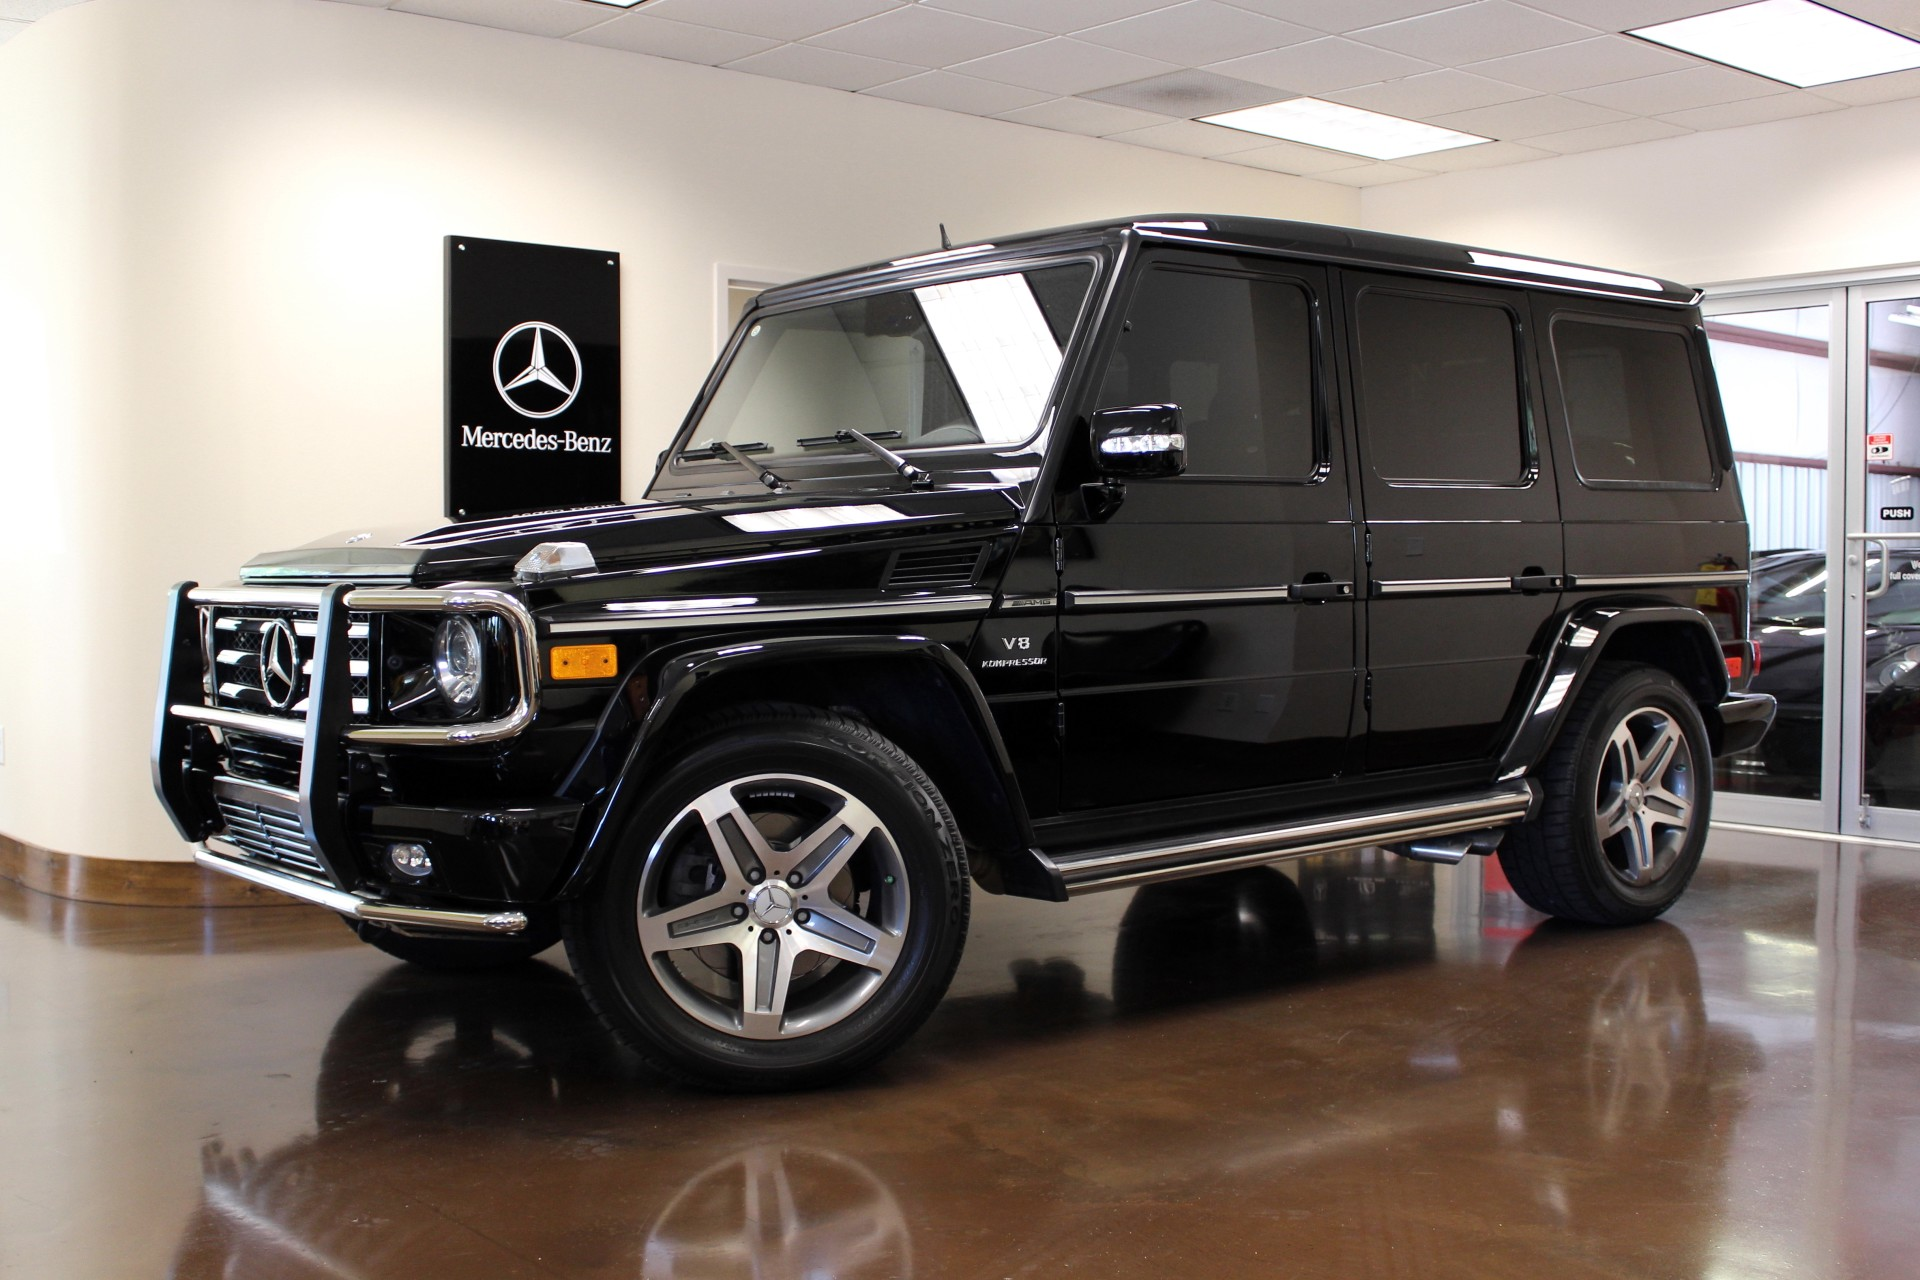 Used 2011 mercedes benz g class stock p2877 ultra luxury for 2011 mercedes benz g55